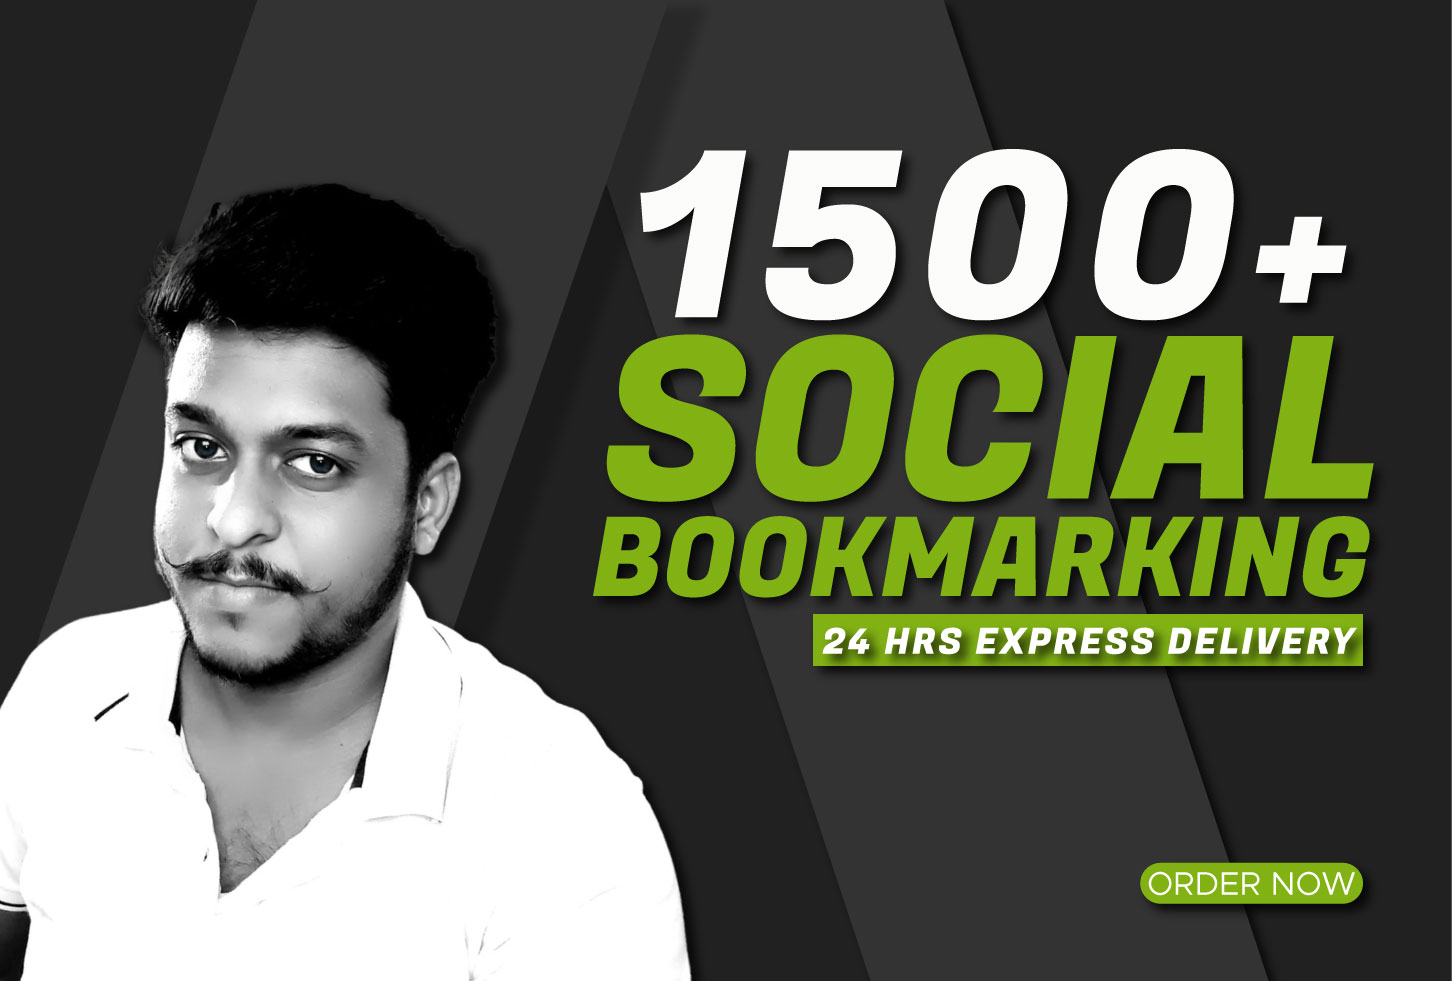 Instant 1500+ Live Social Bookmarking Links within 24 hours